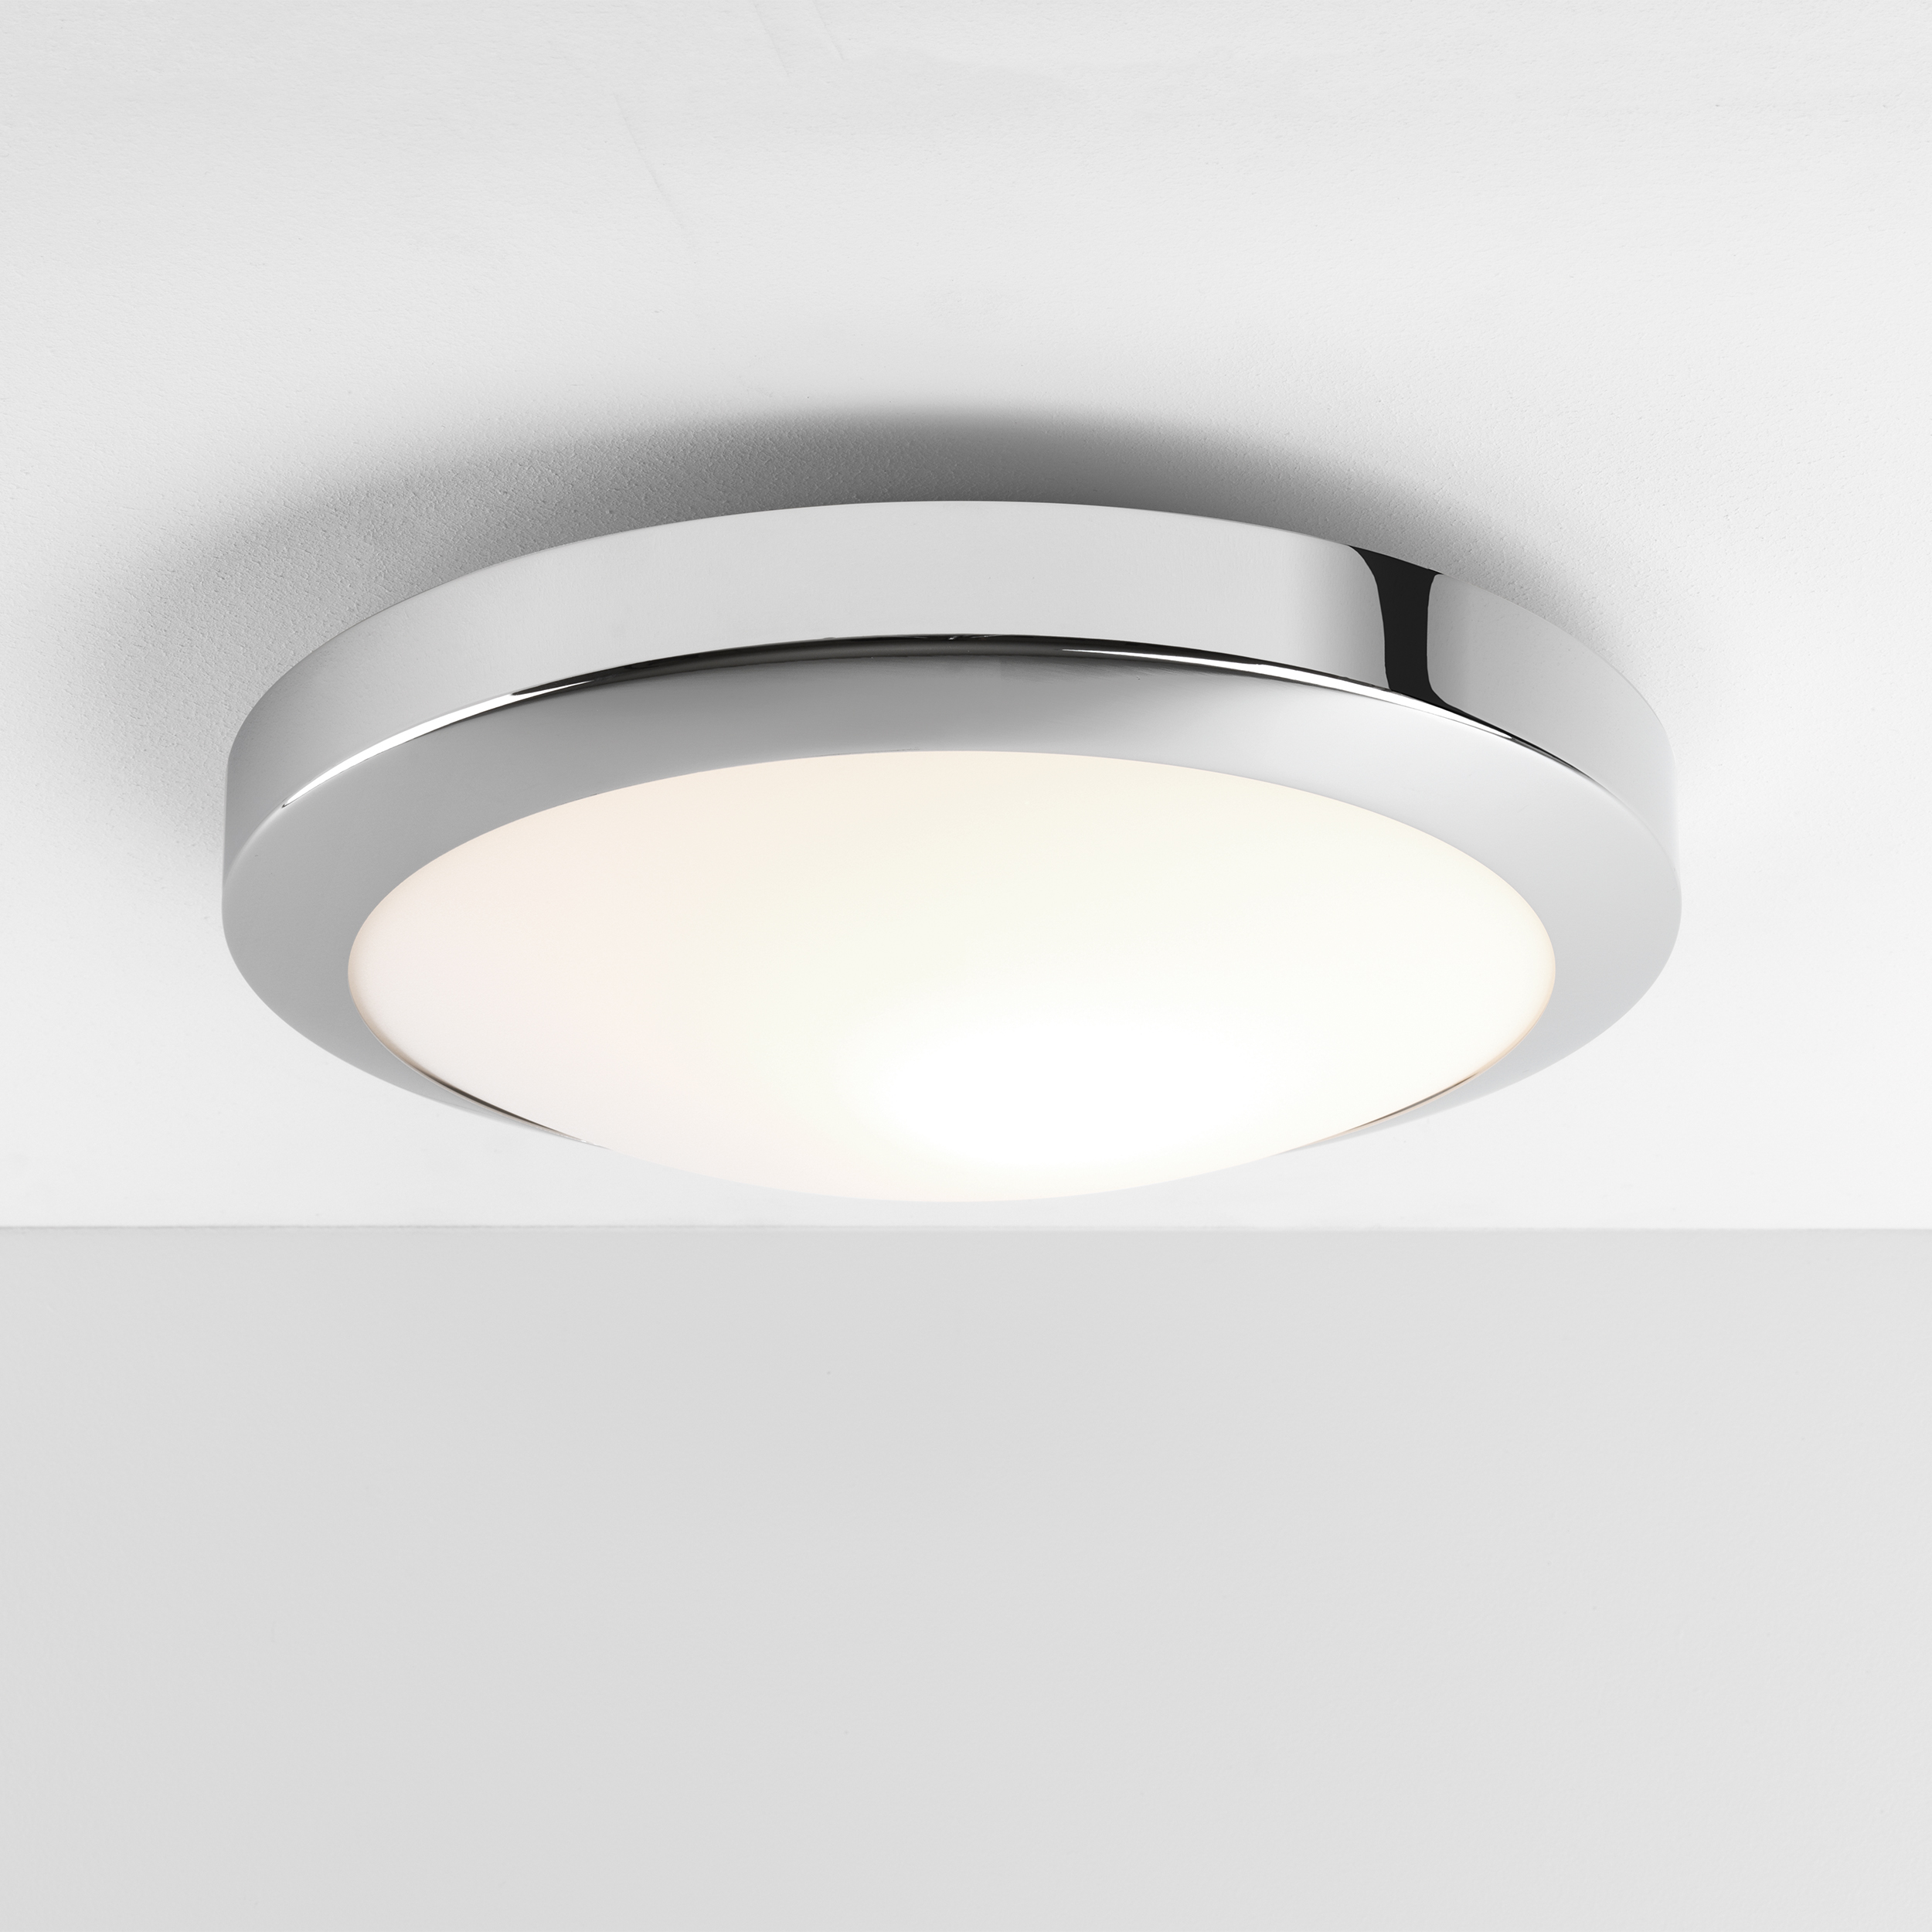 Astro dakota LED round bathroom ceiling light 16W polished chrome IP44 300mm Thumbnail 1